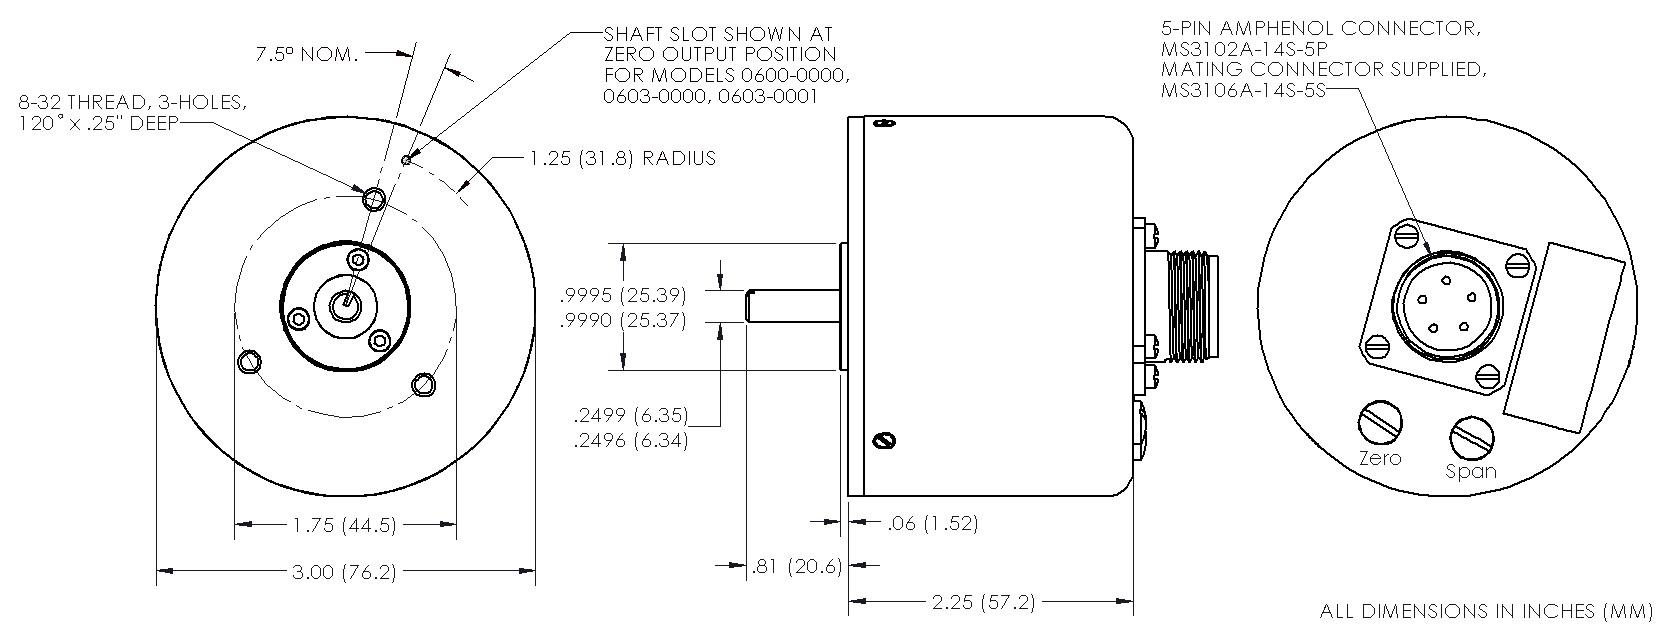 the trans tek, inc series 600 angular displacement transducers LVDT Schematic